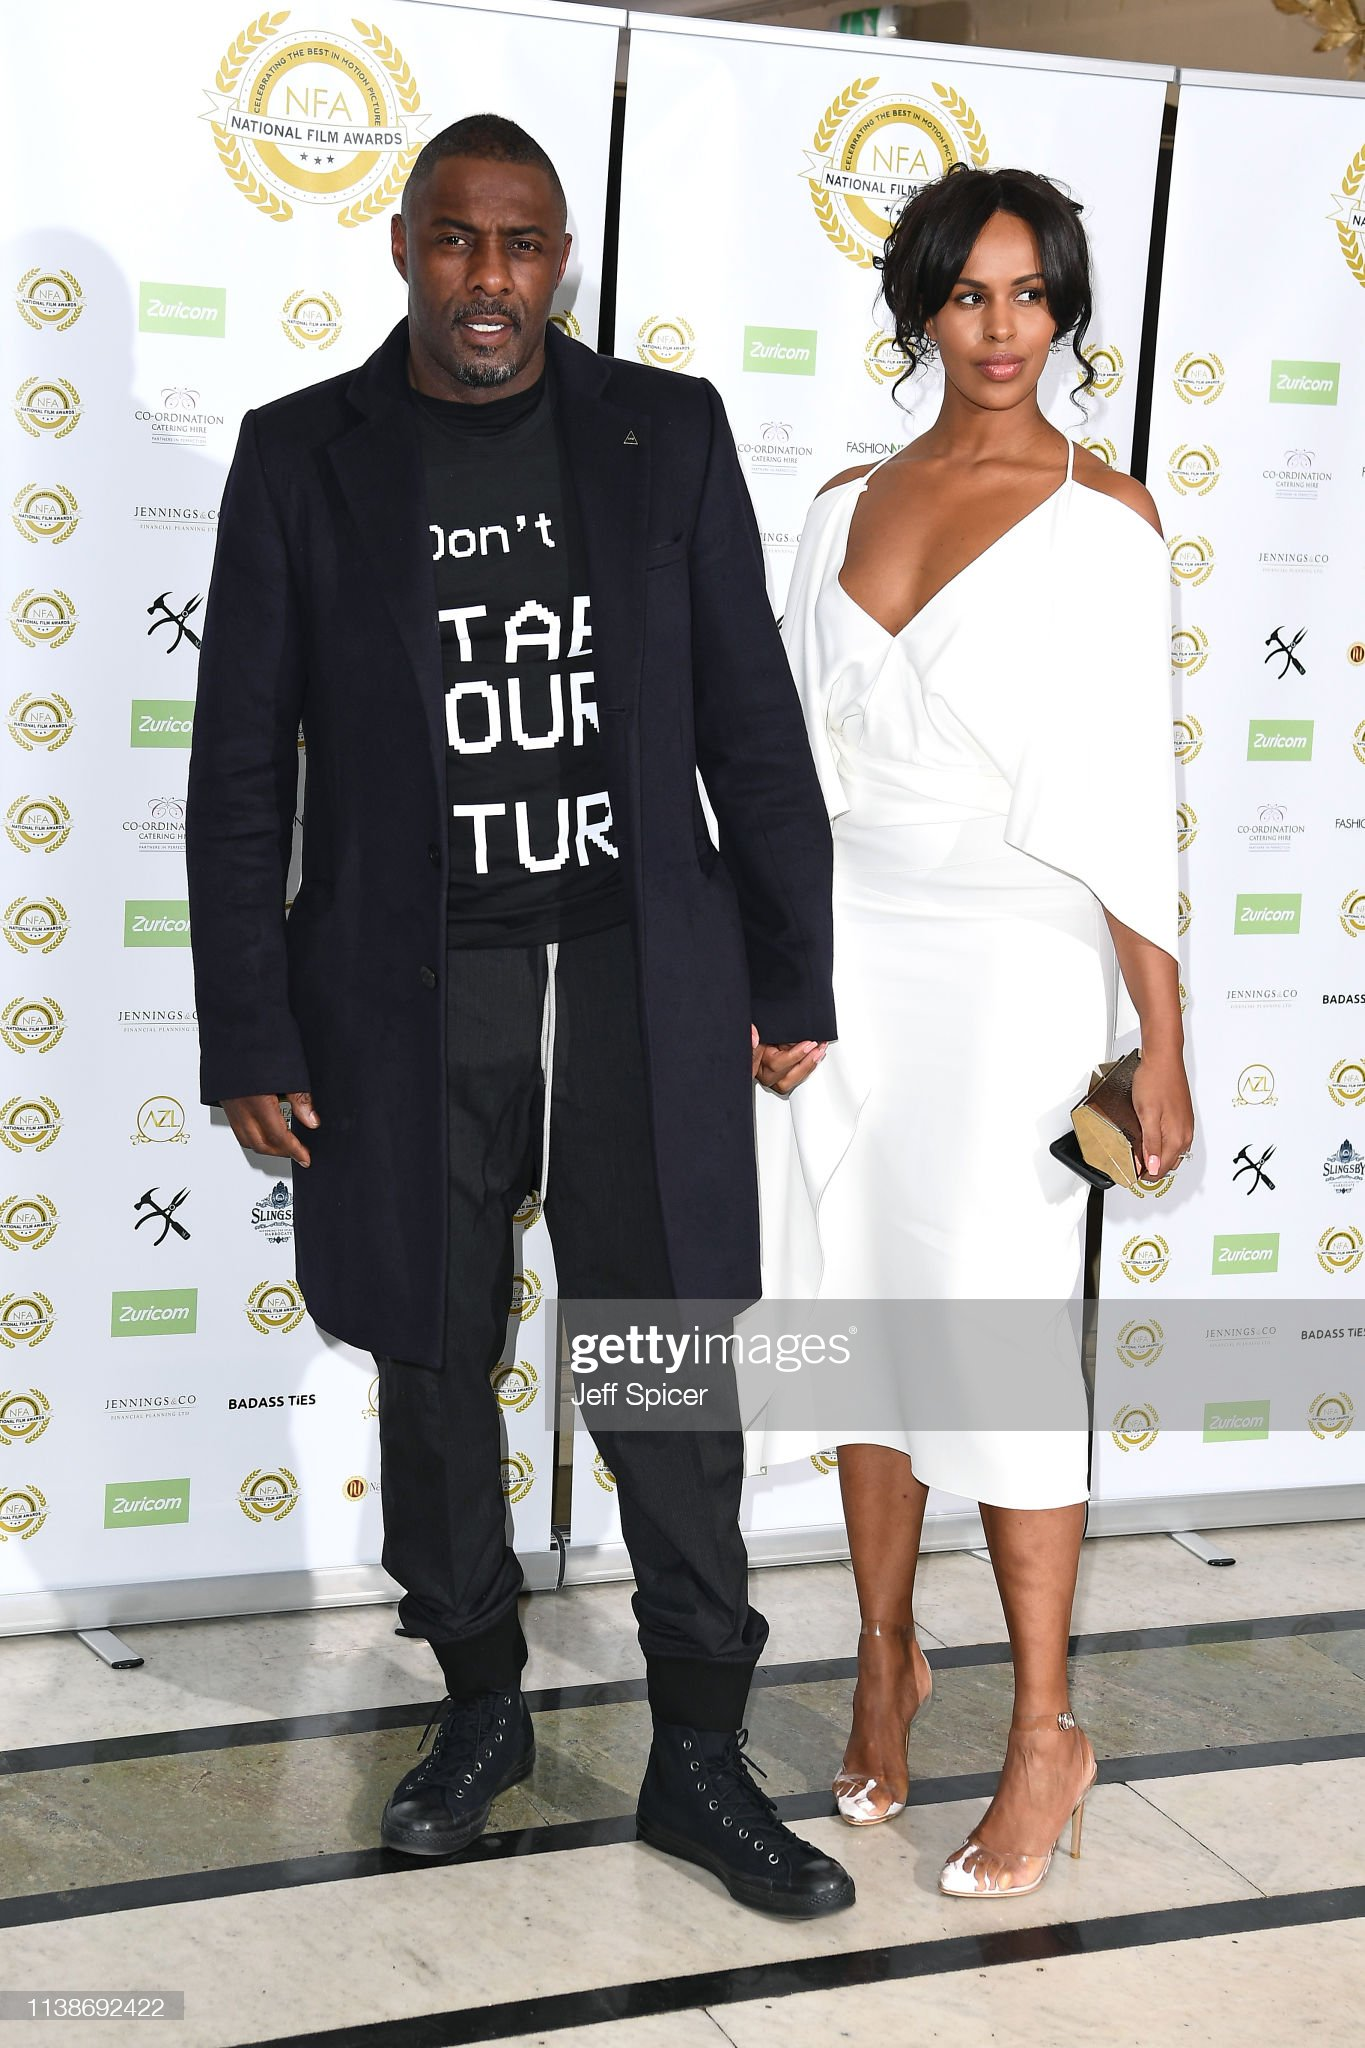 ¿Cuánto mide Idris Elba? - Real height Idris-elba-and-sabrina-dhowre-attend-the-national-film-awards-at-on-picture-id1138692422?s=2048x2048